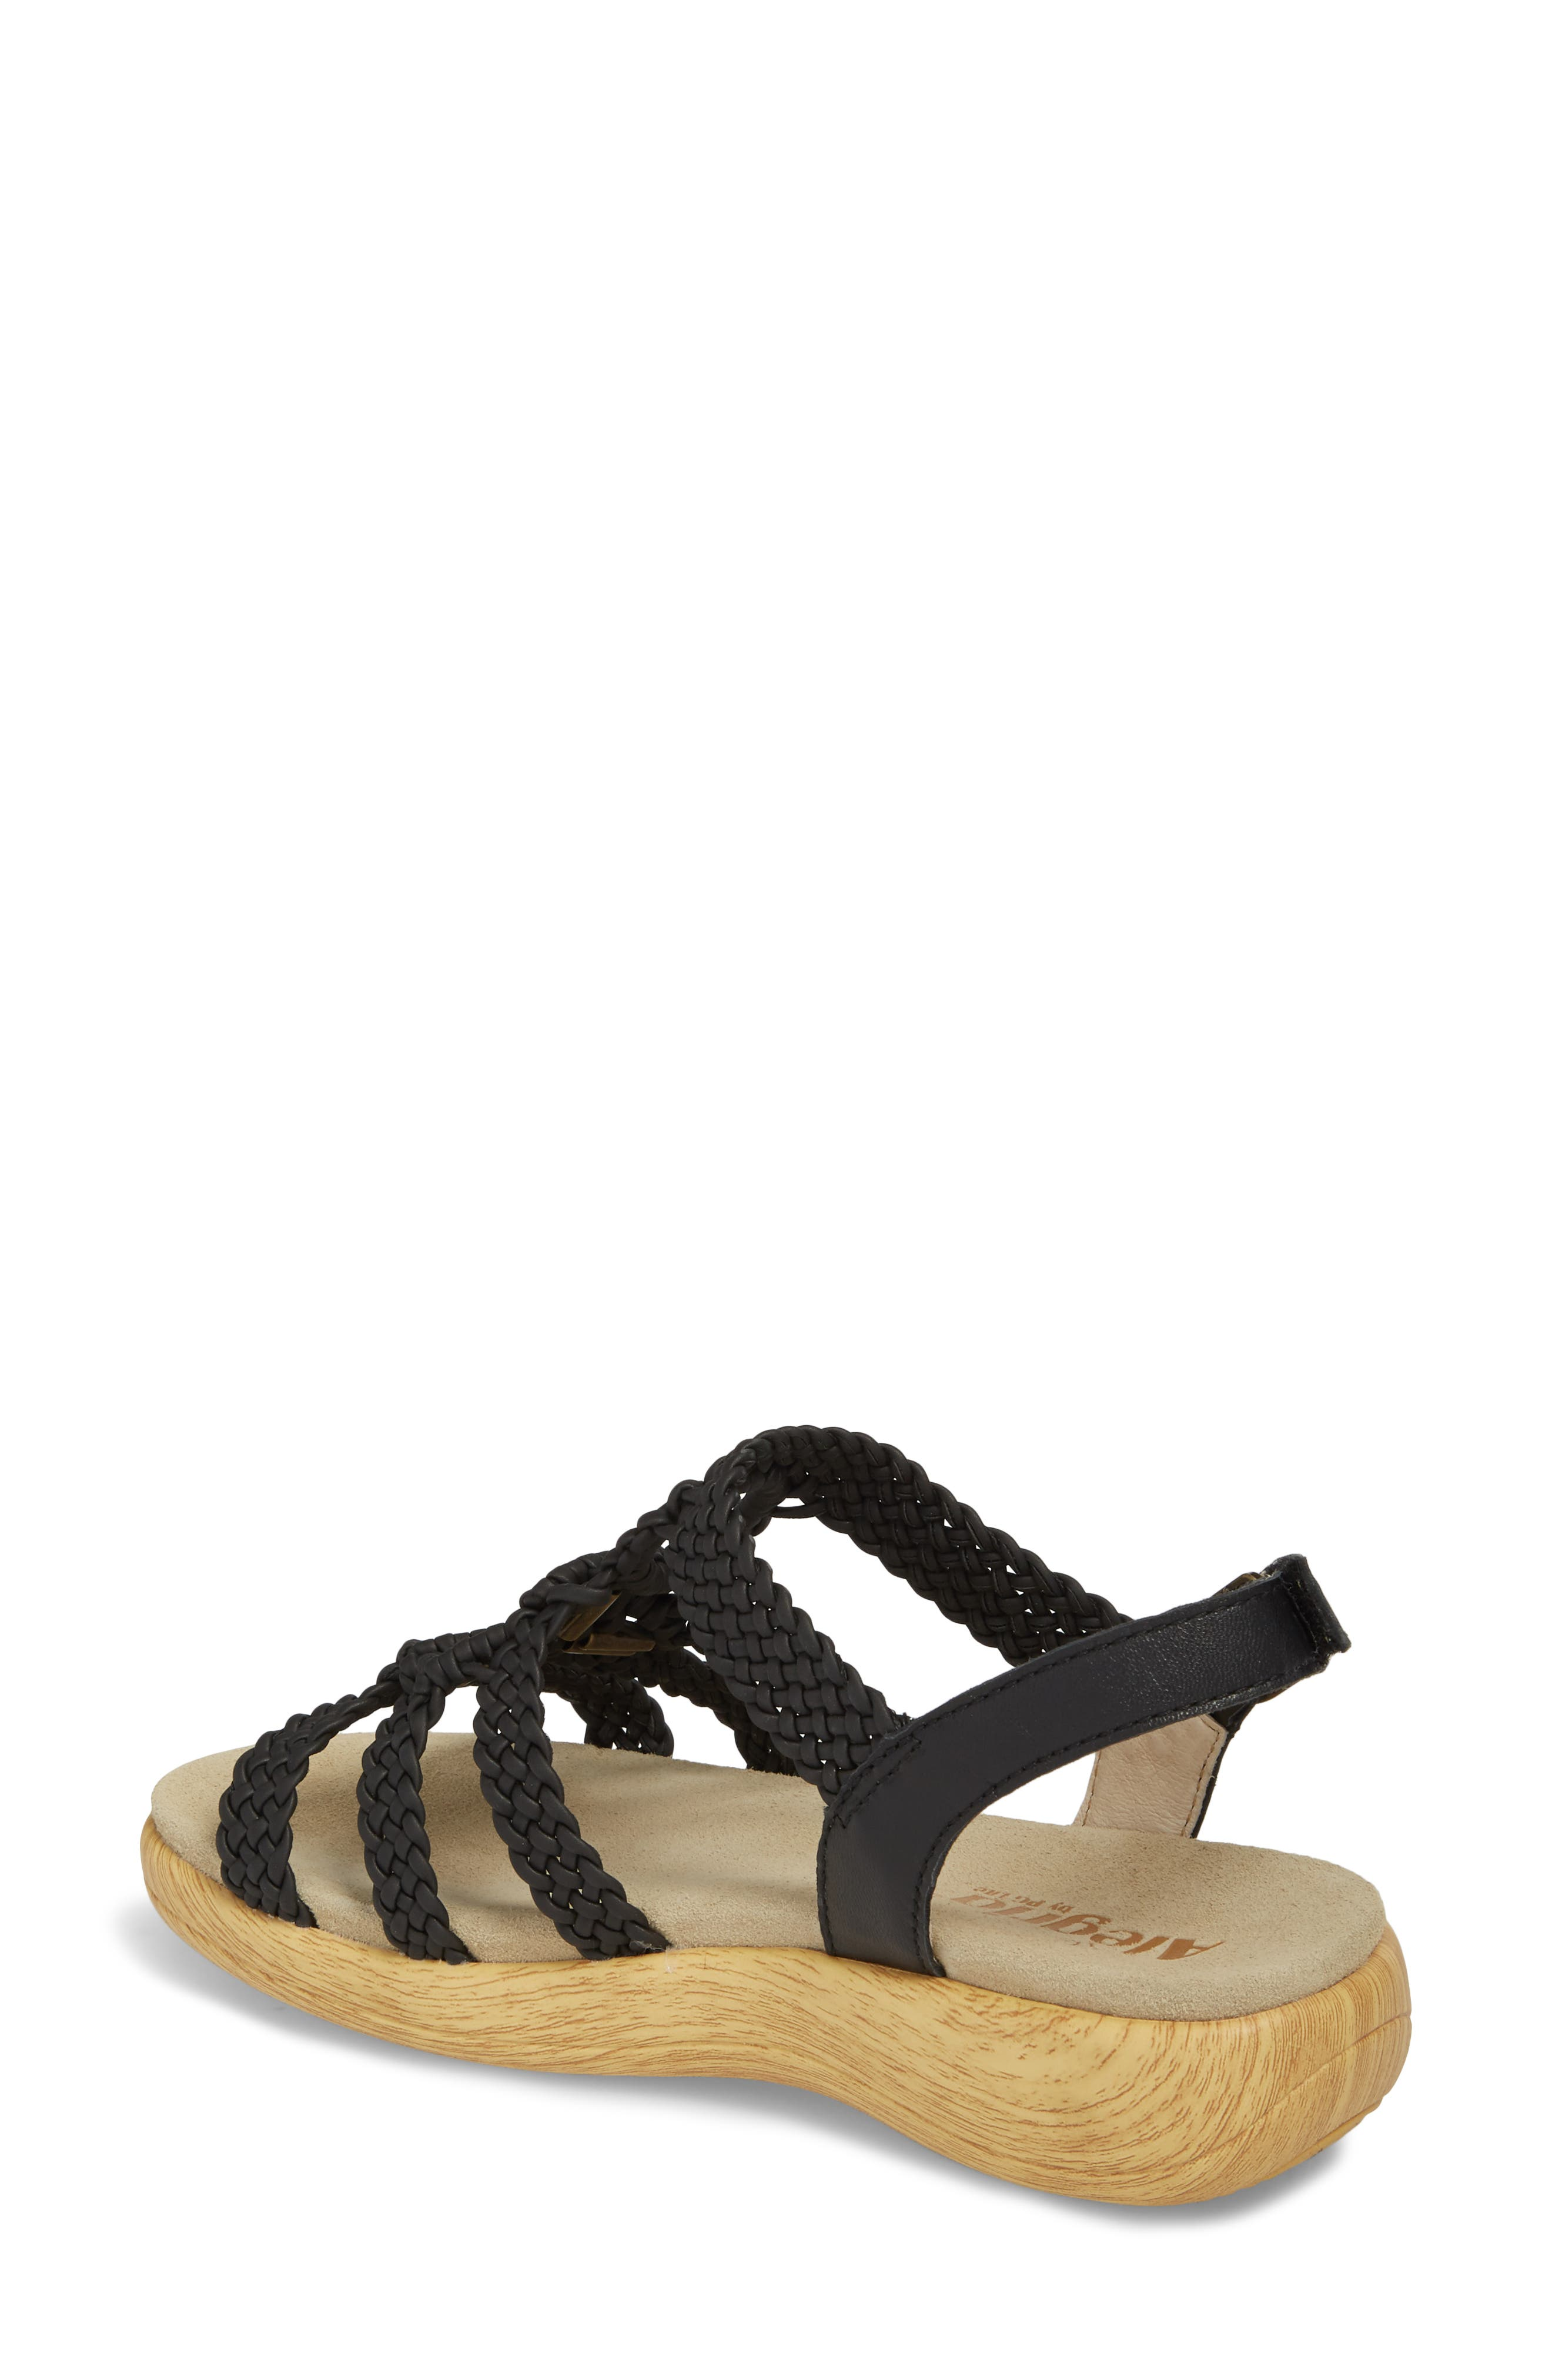 Jena Sandal,                             Alternate thumbnail 4, color,